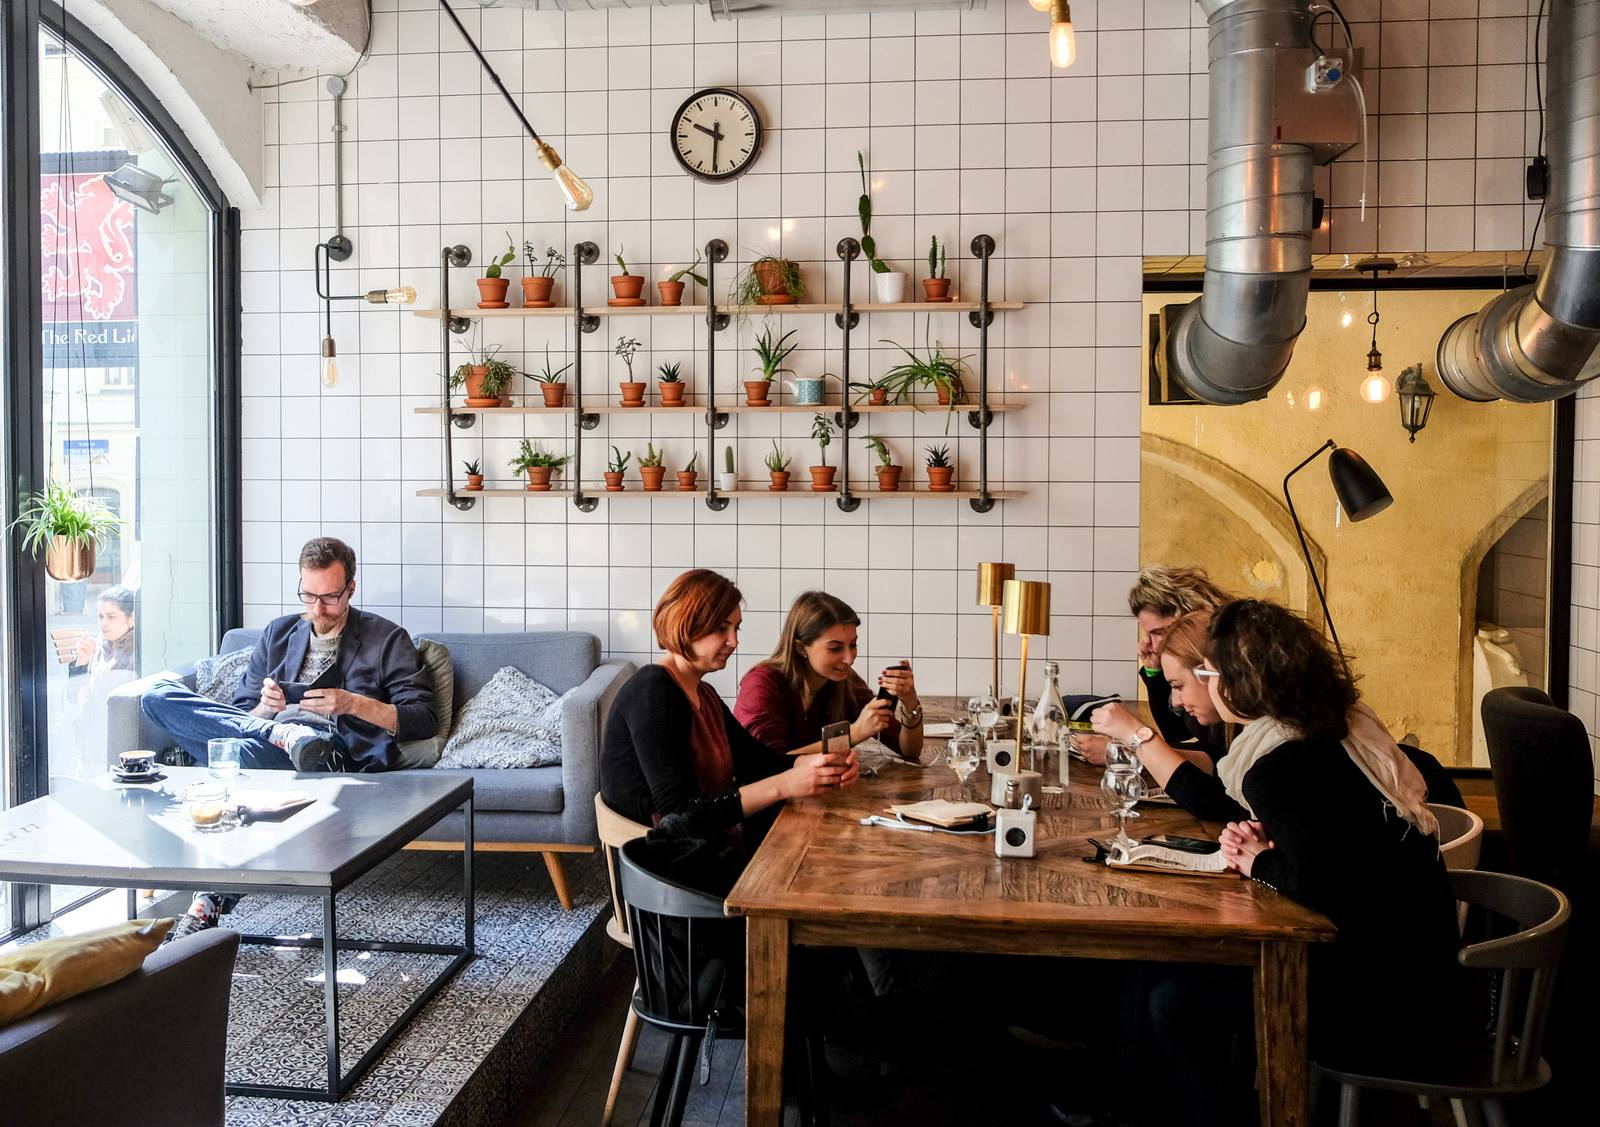 Peru Search Date 2018 10 Produk Ukm Bumn Baterai Abc Alkaline Aaa 1pak 24lembar Buzzing With Life In The Heart Of Bratislava Urban Bistro Makes For A Pleasant Stop To Rest Feet And Refresh Spirit An Espresso Tonic